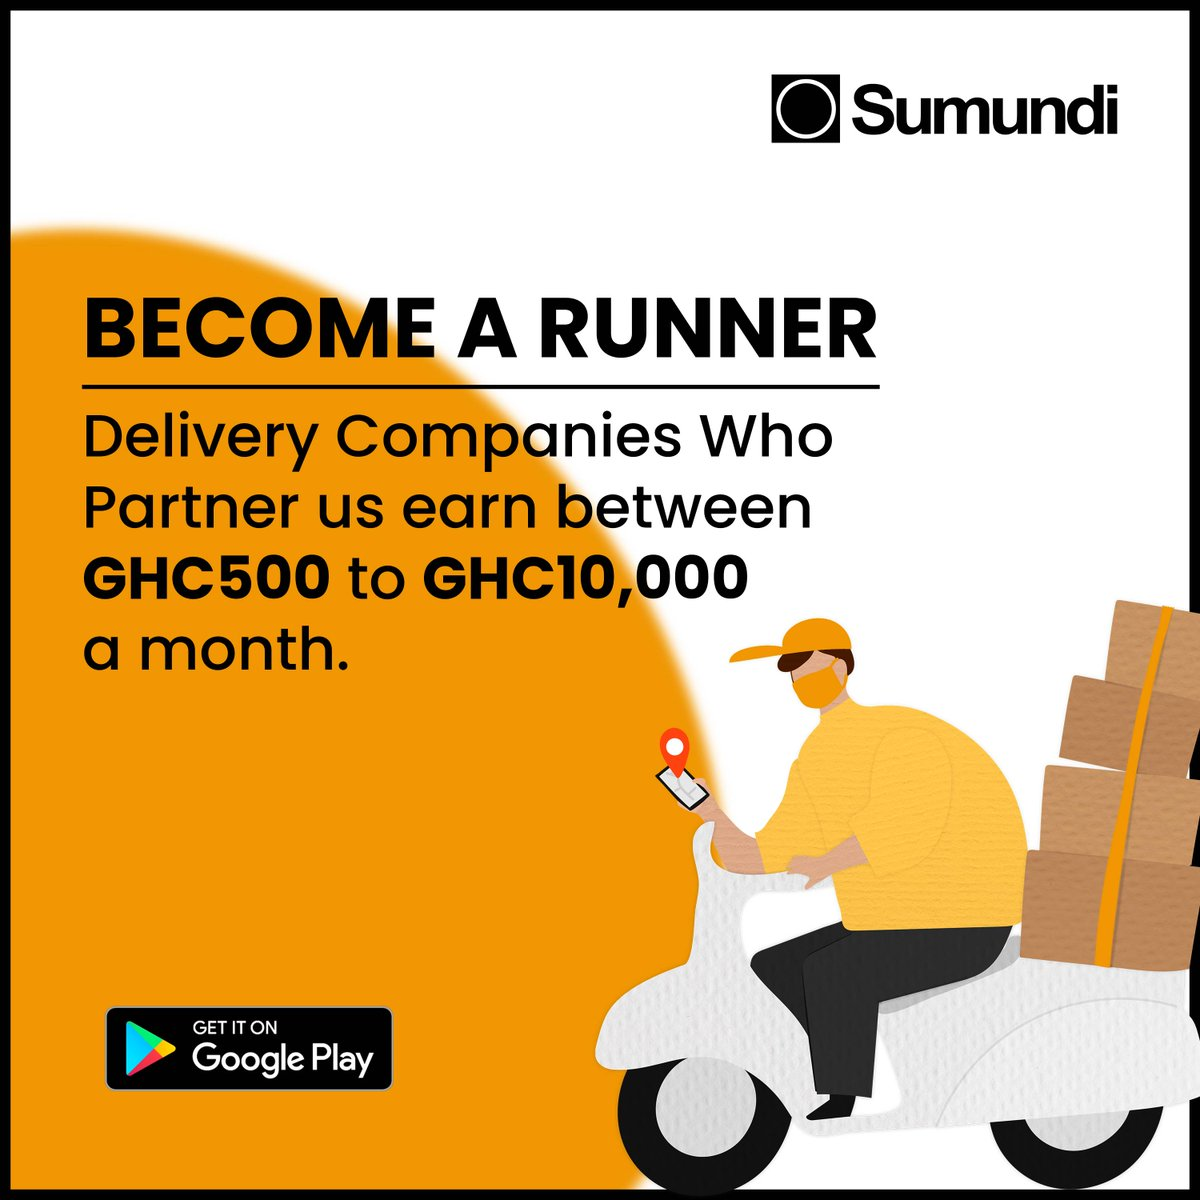 Talk to us even if it's a single logistic. We believe in your dreams!  #Sumundi  #Retail  #deliverypic.twitter.com/lJn9nNyHpU